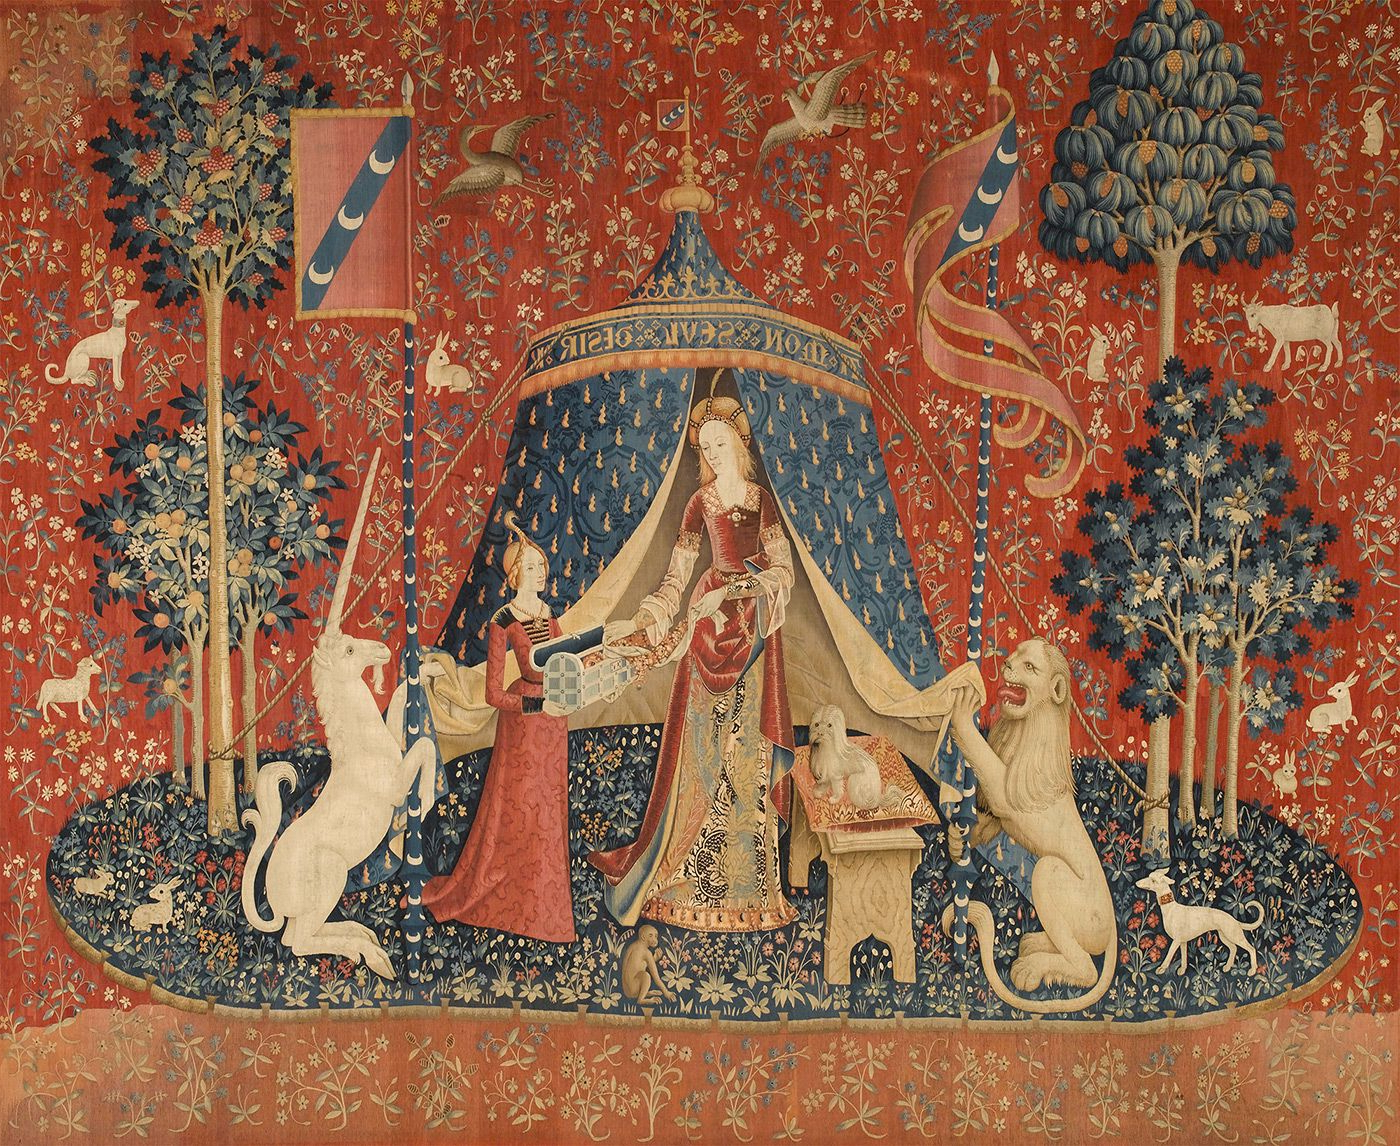 Well Known The Lady And The Unicorn – Wikipedia With Regard To Grandes Armoiries I European Tapestries (View 20 of 20)